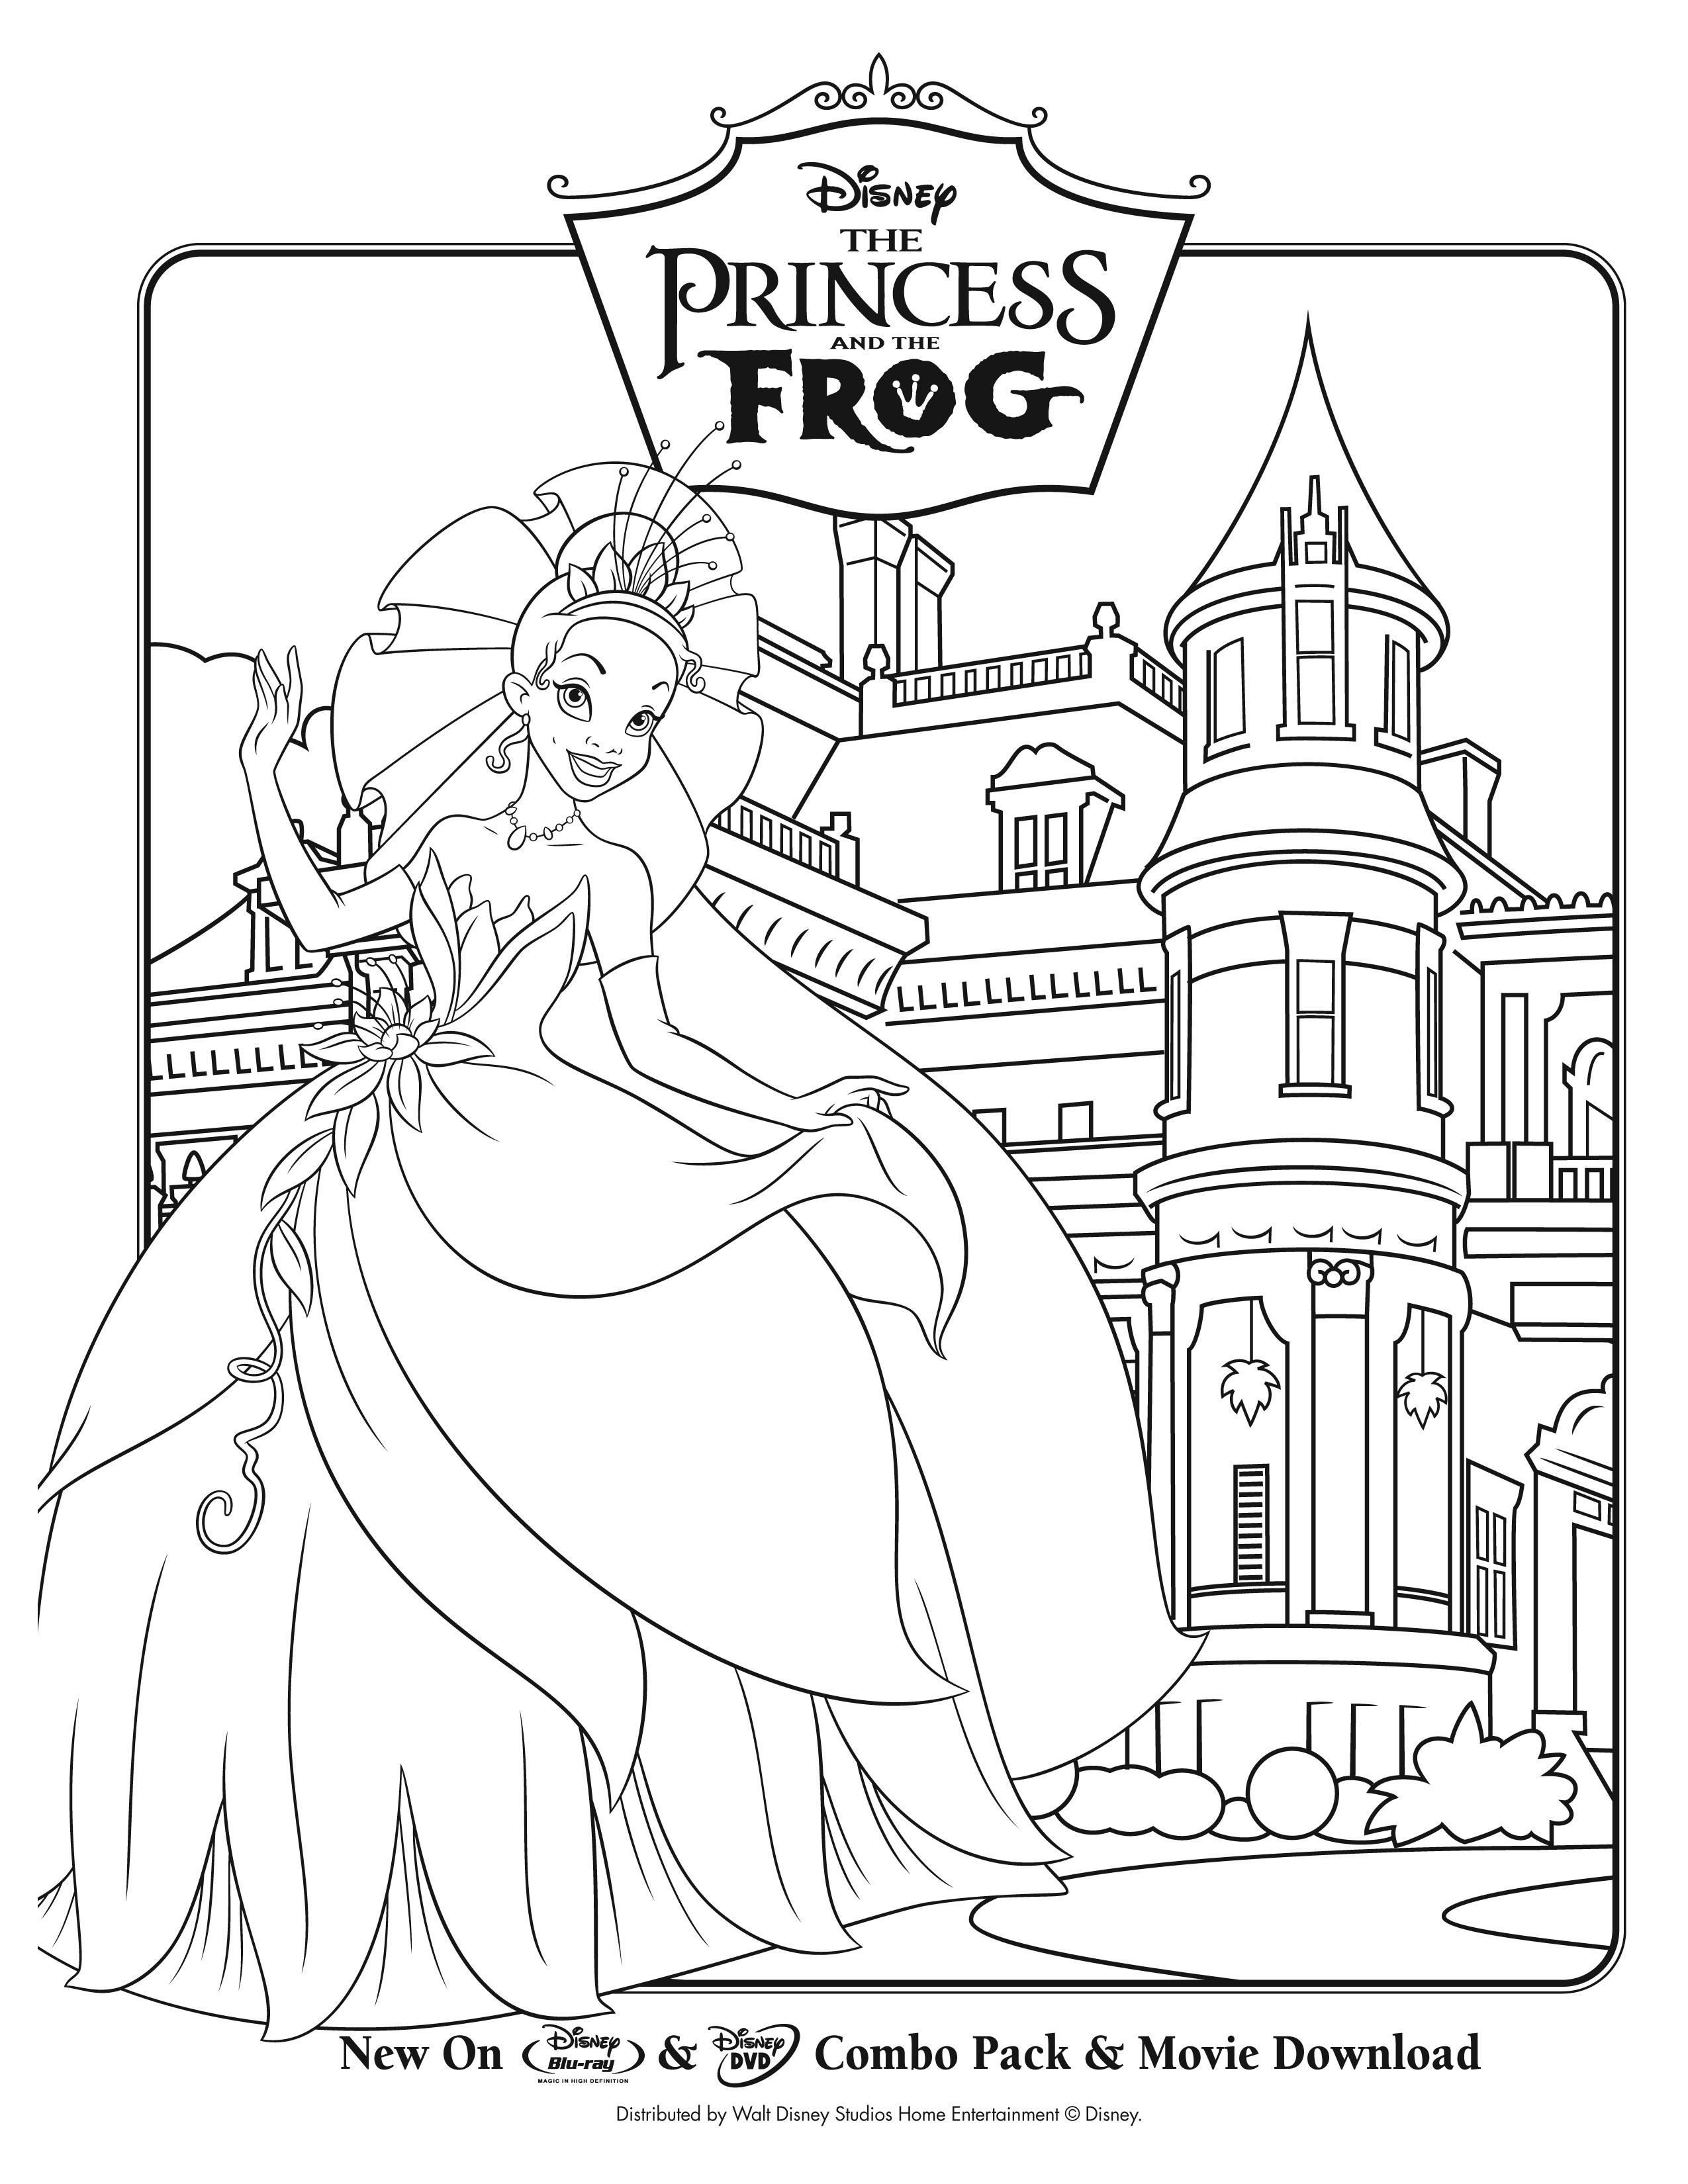 Funny free The Princess And The Frog coloring page to print and color